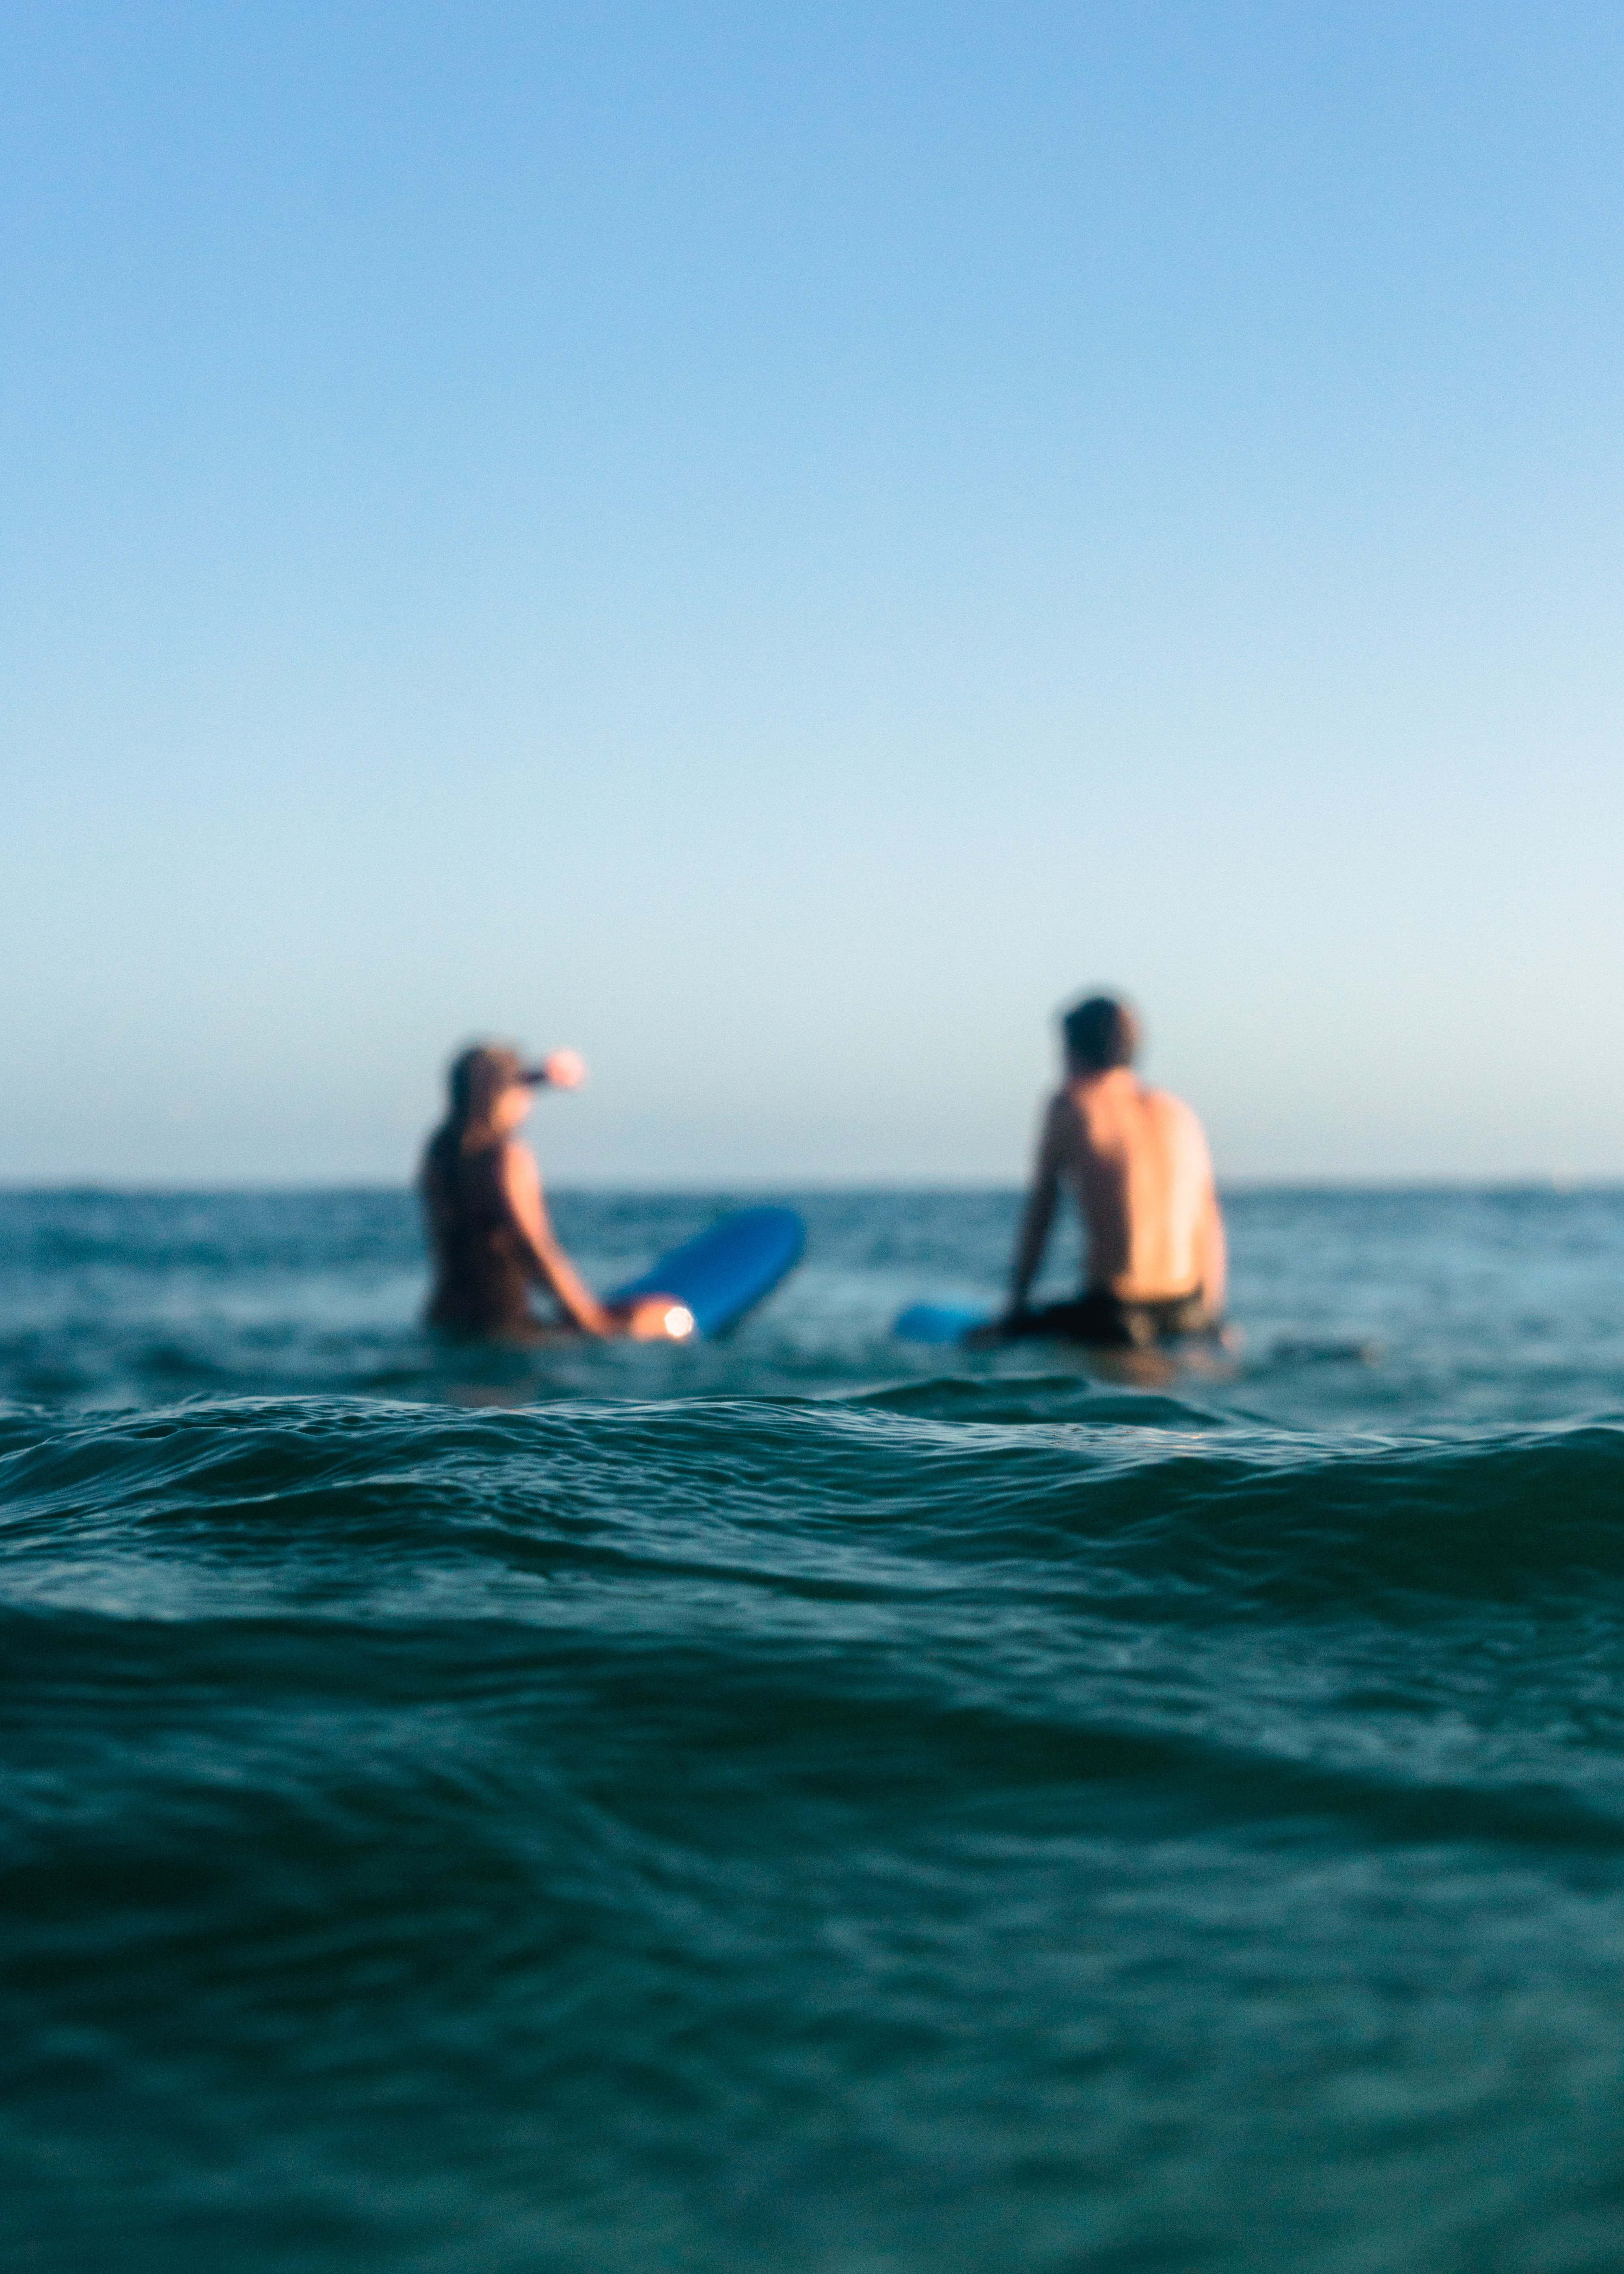 two surfer on ocean water during daytime